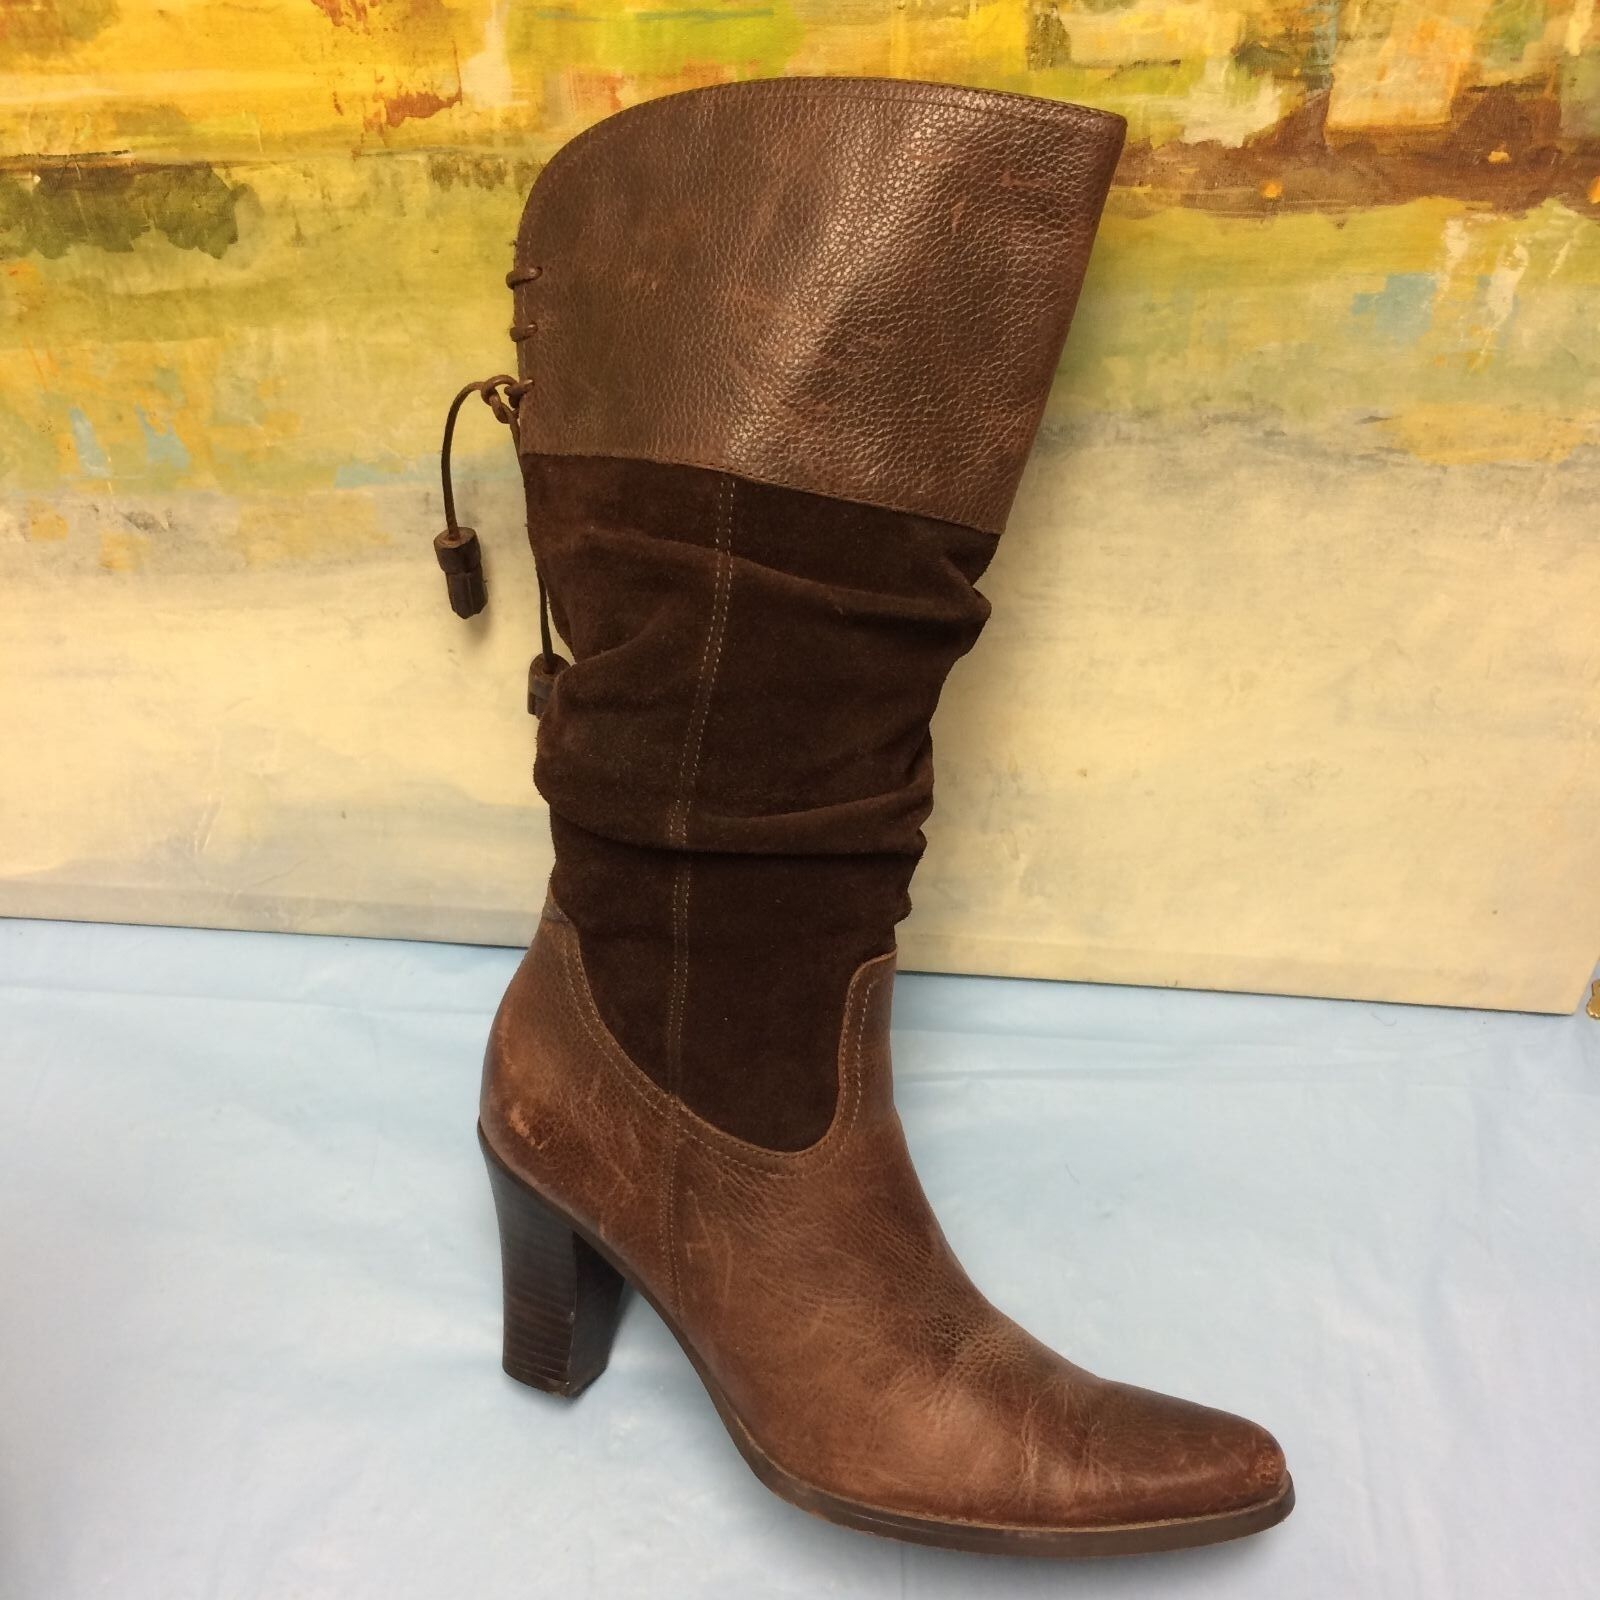 Ana Tall Brown Leather & Suede Tall Pointed Toe Fashion Boots Sz. 7 M